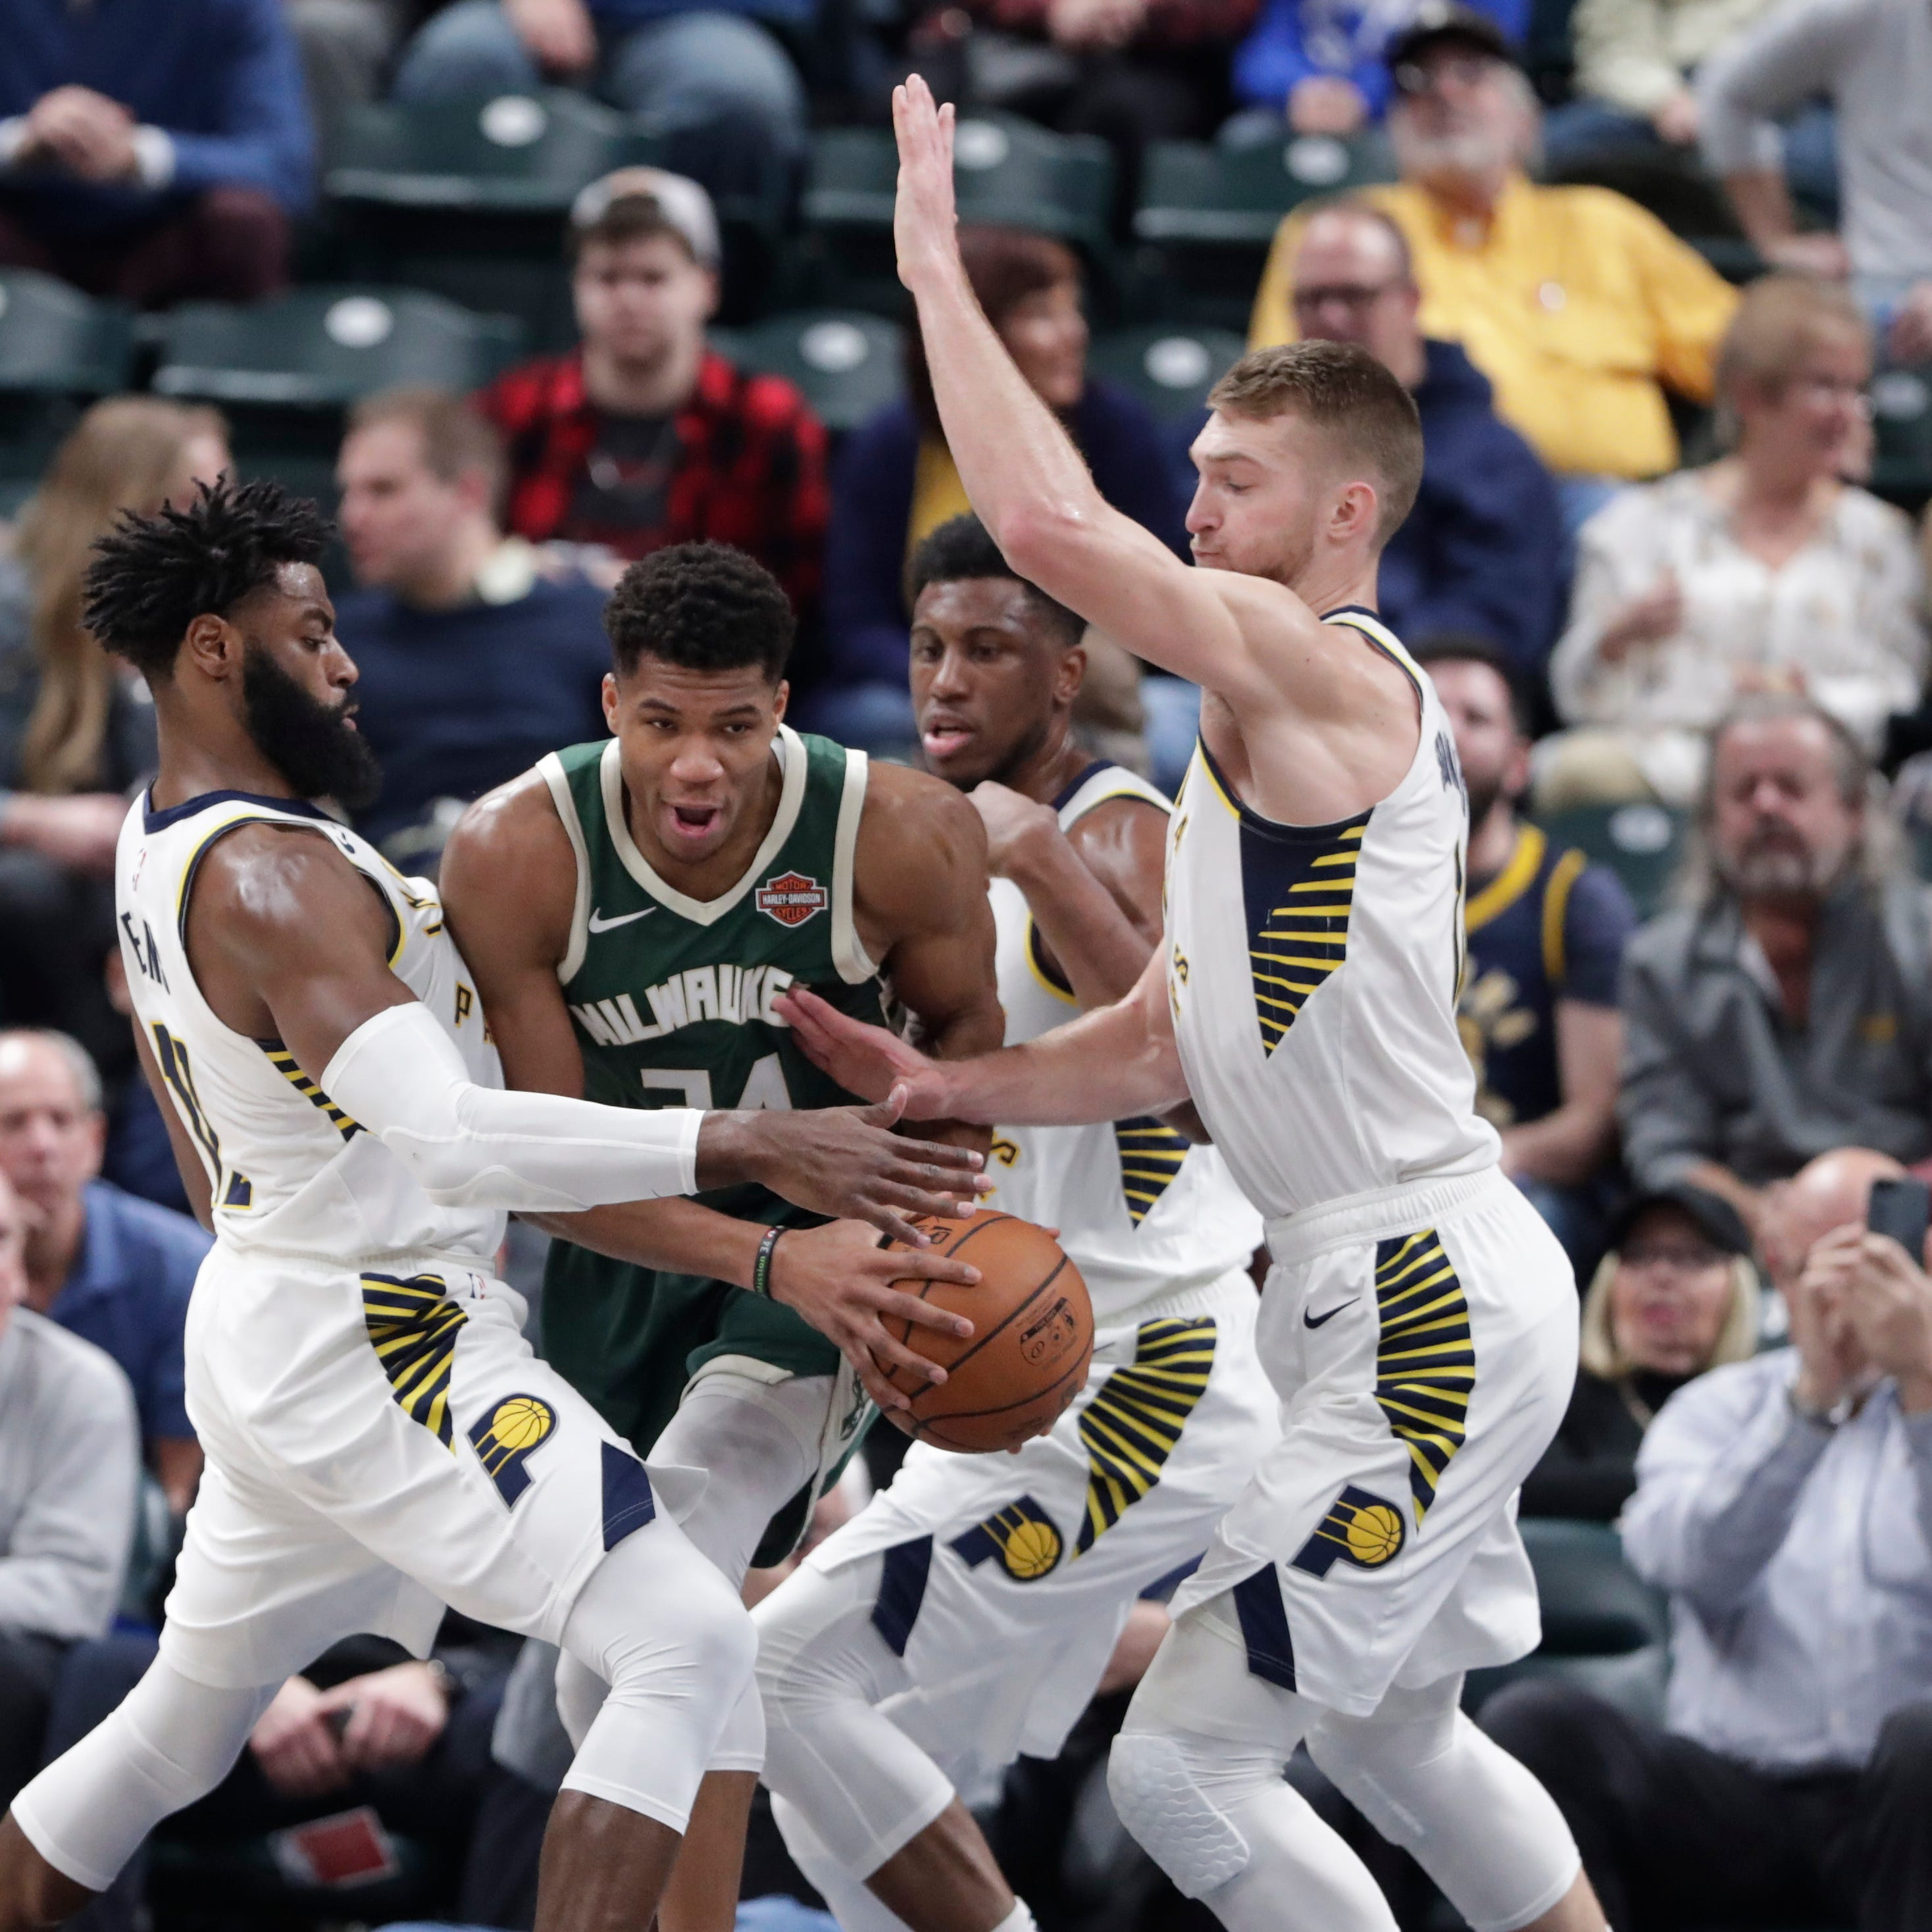 Pacers 113, Bucks 97: Unable to find a way around clogged lanes